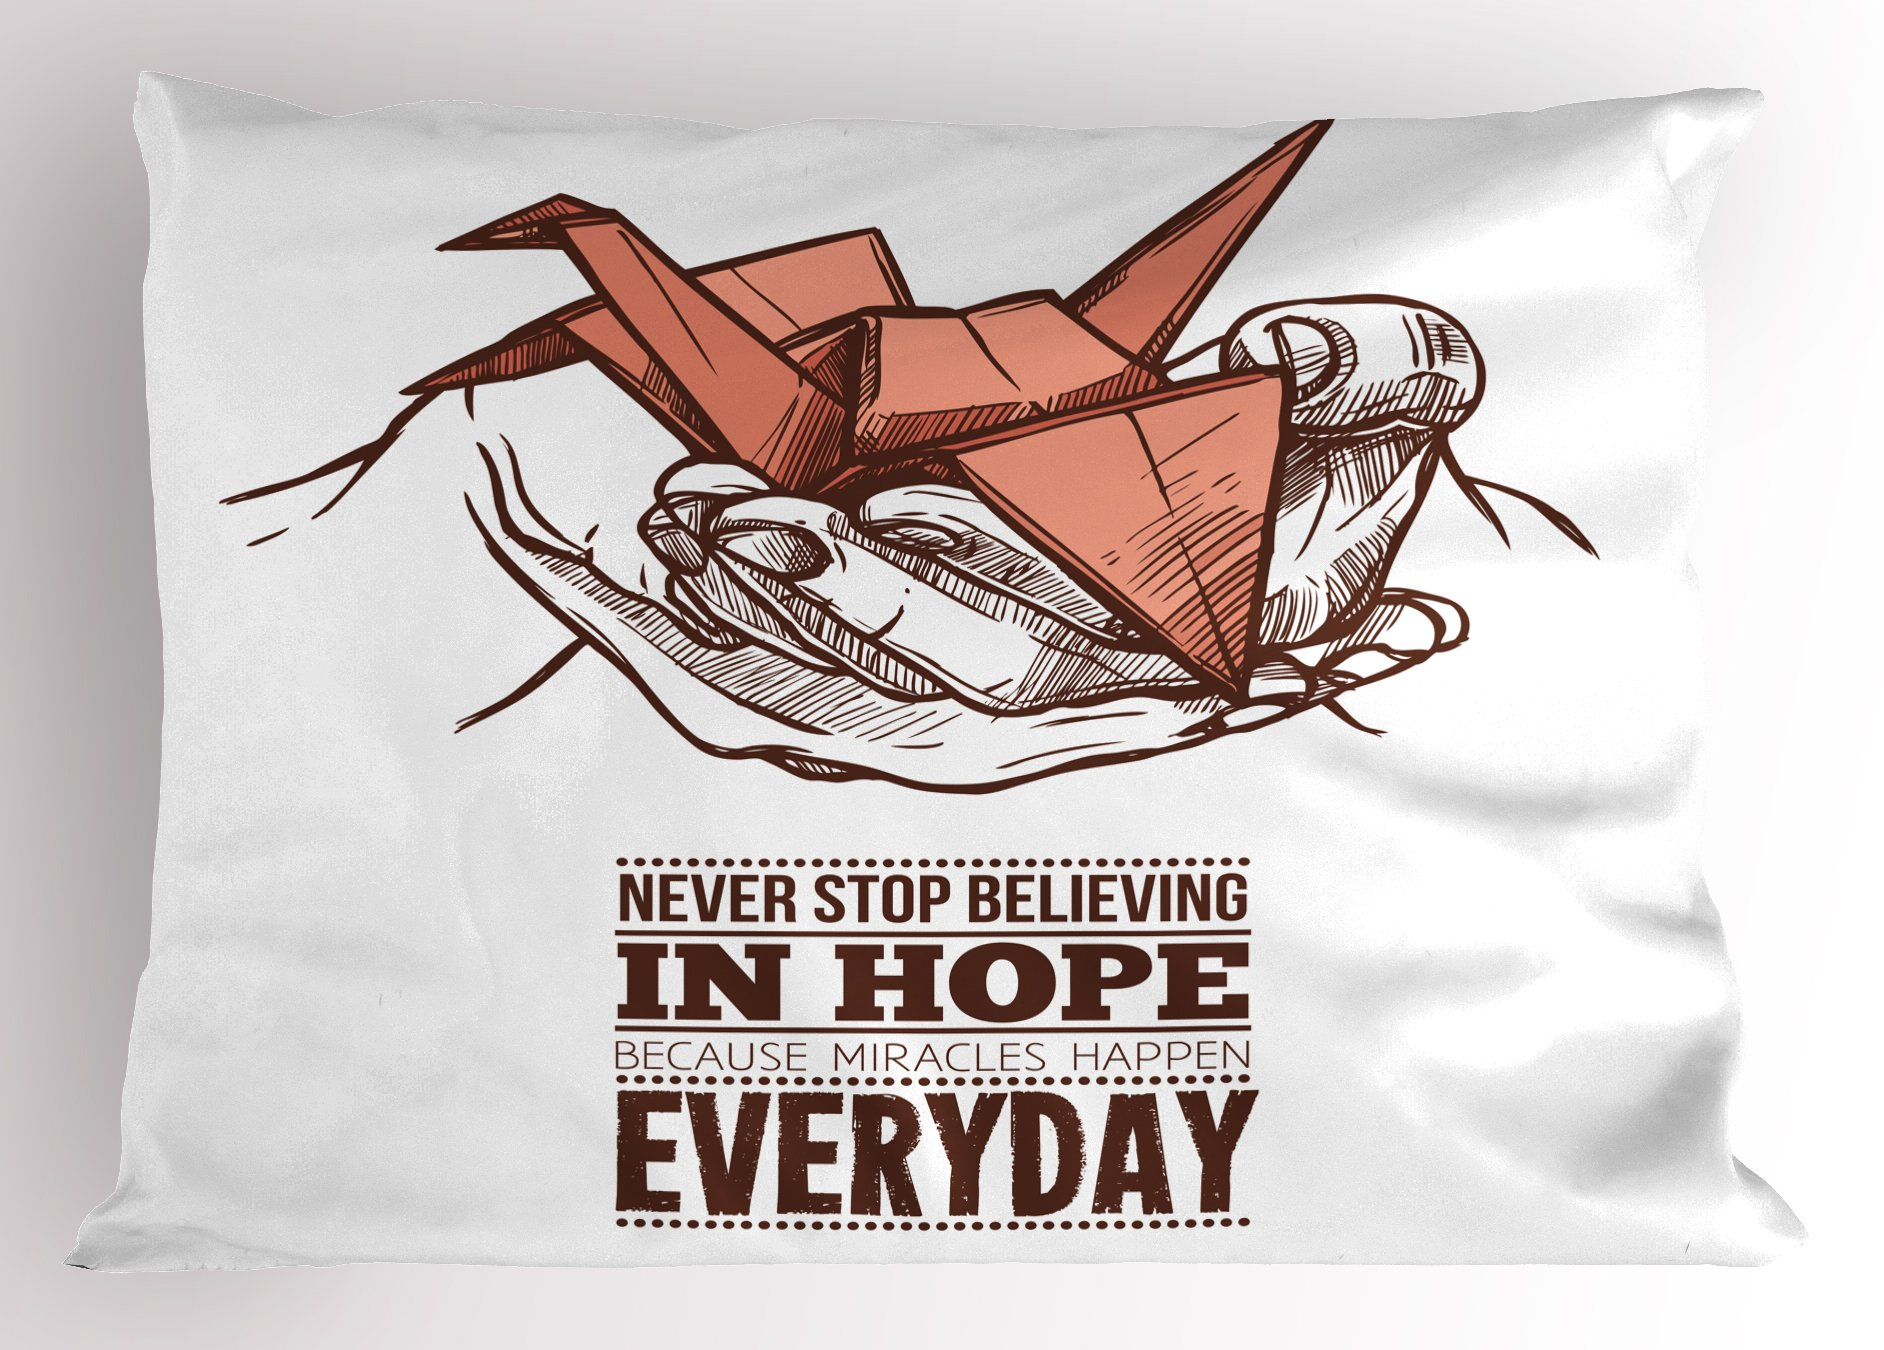 Ambesonne Hope Pillow Sham, Hands Holding an Origami Crane with a Miracles Happen Everyday Quote, Decorative Standard Size Printed Pillowcase, 26 X 20 inches, Pale Orange Brown White